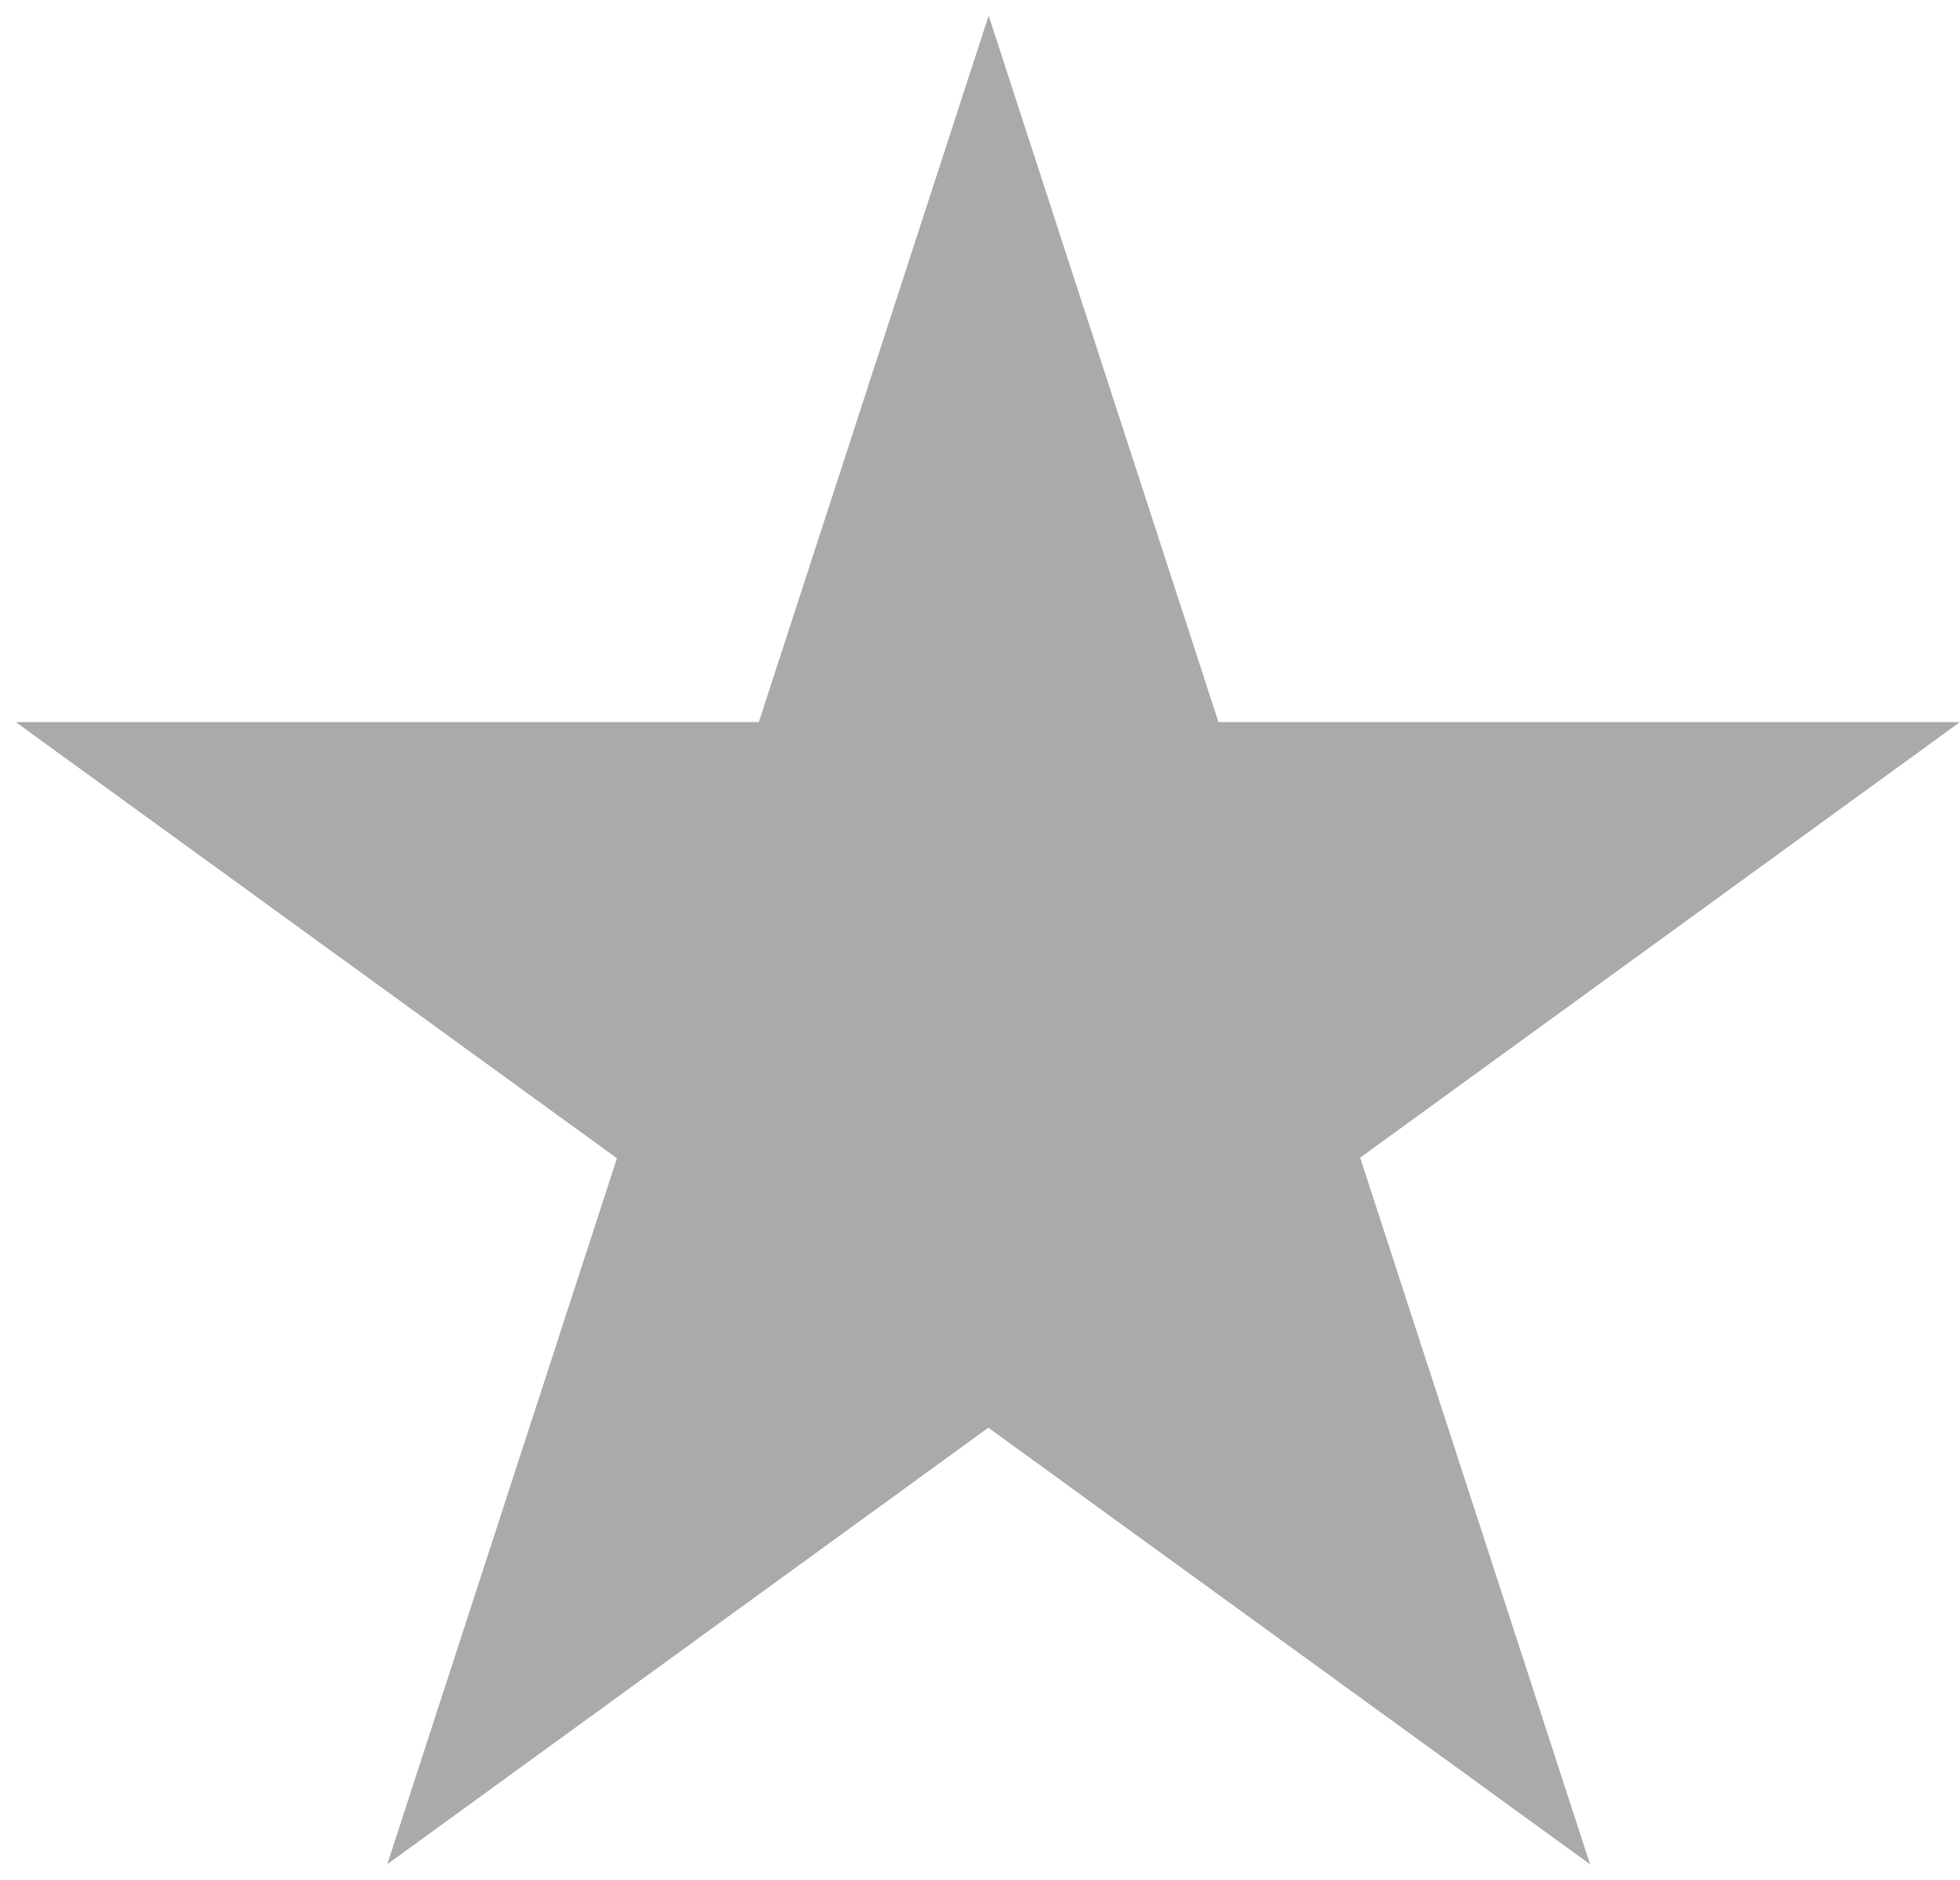 grey star png image purepng free transparent cc0 png image library